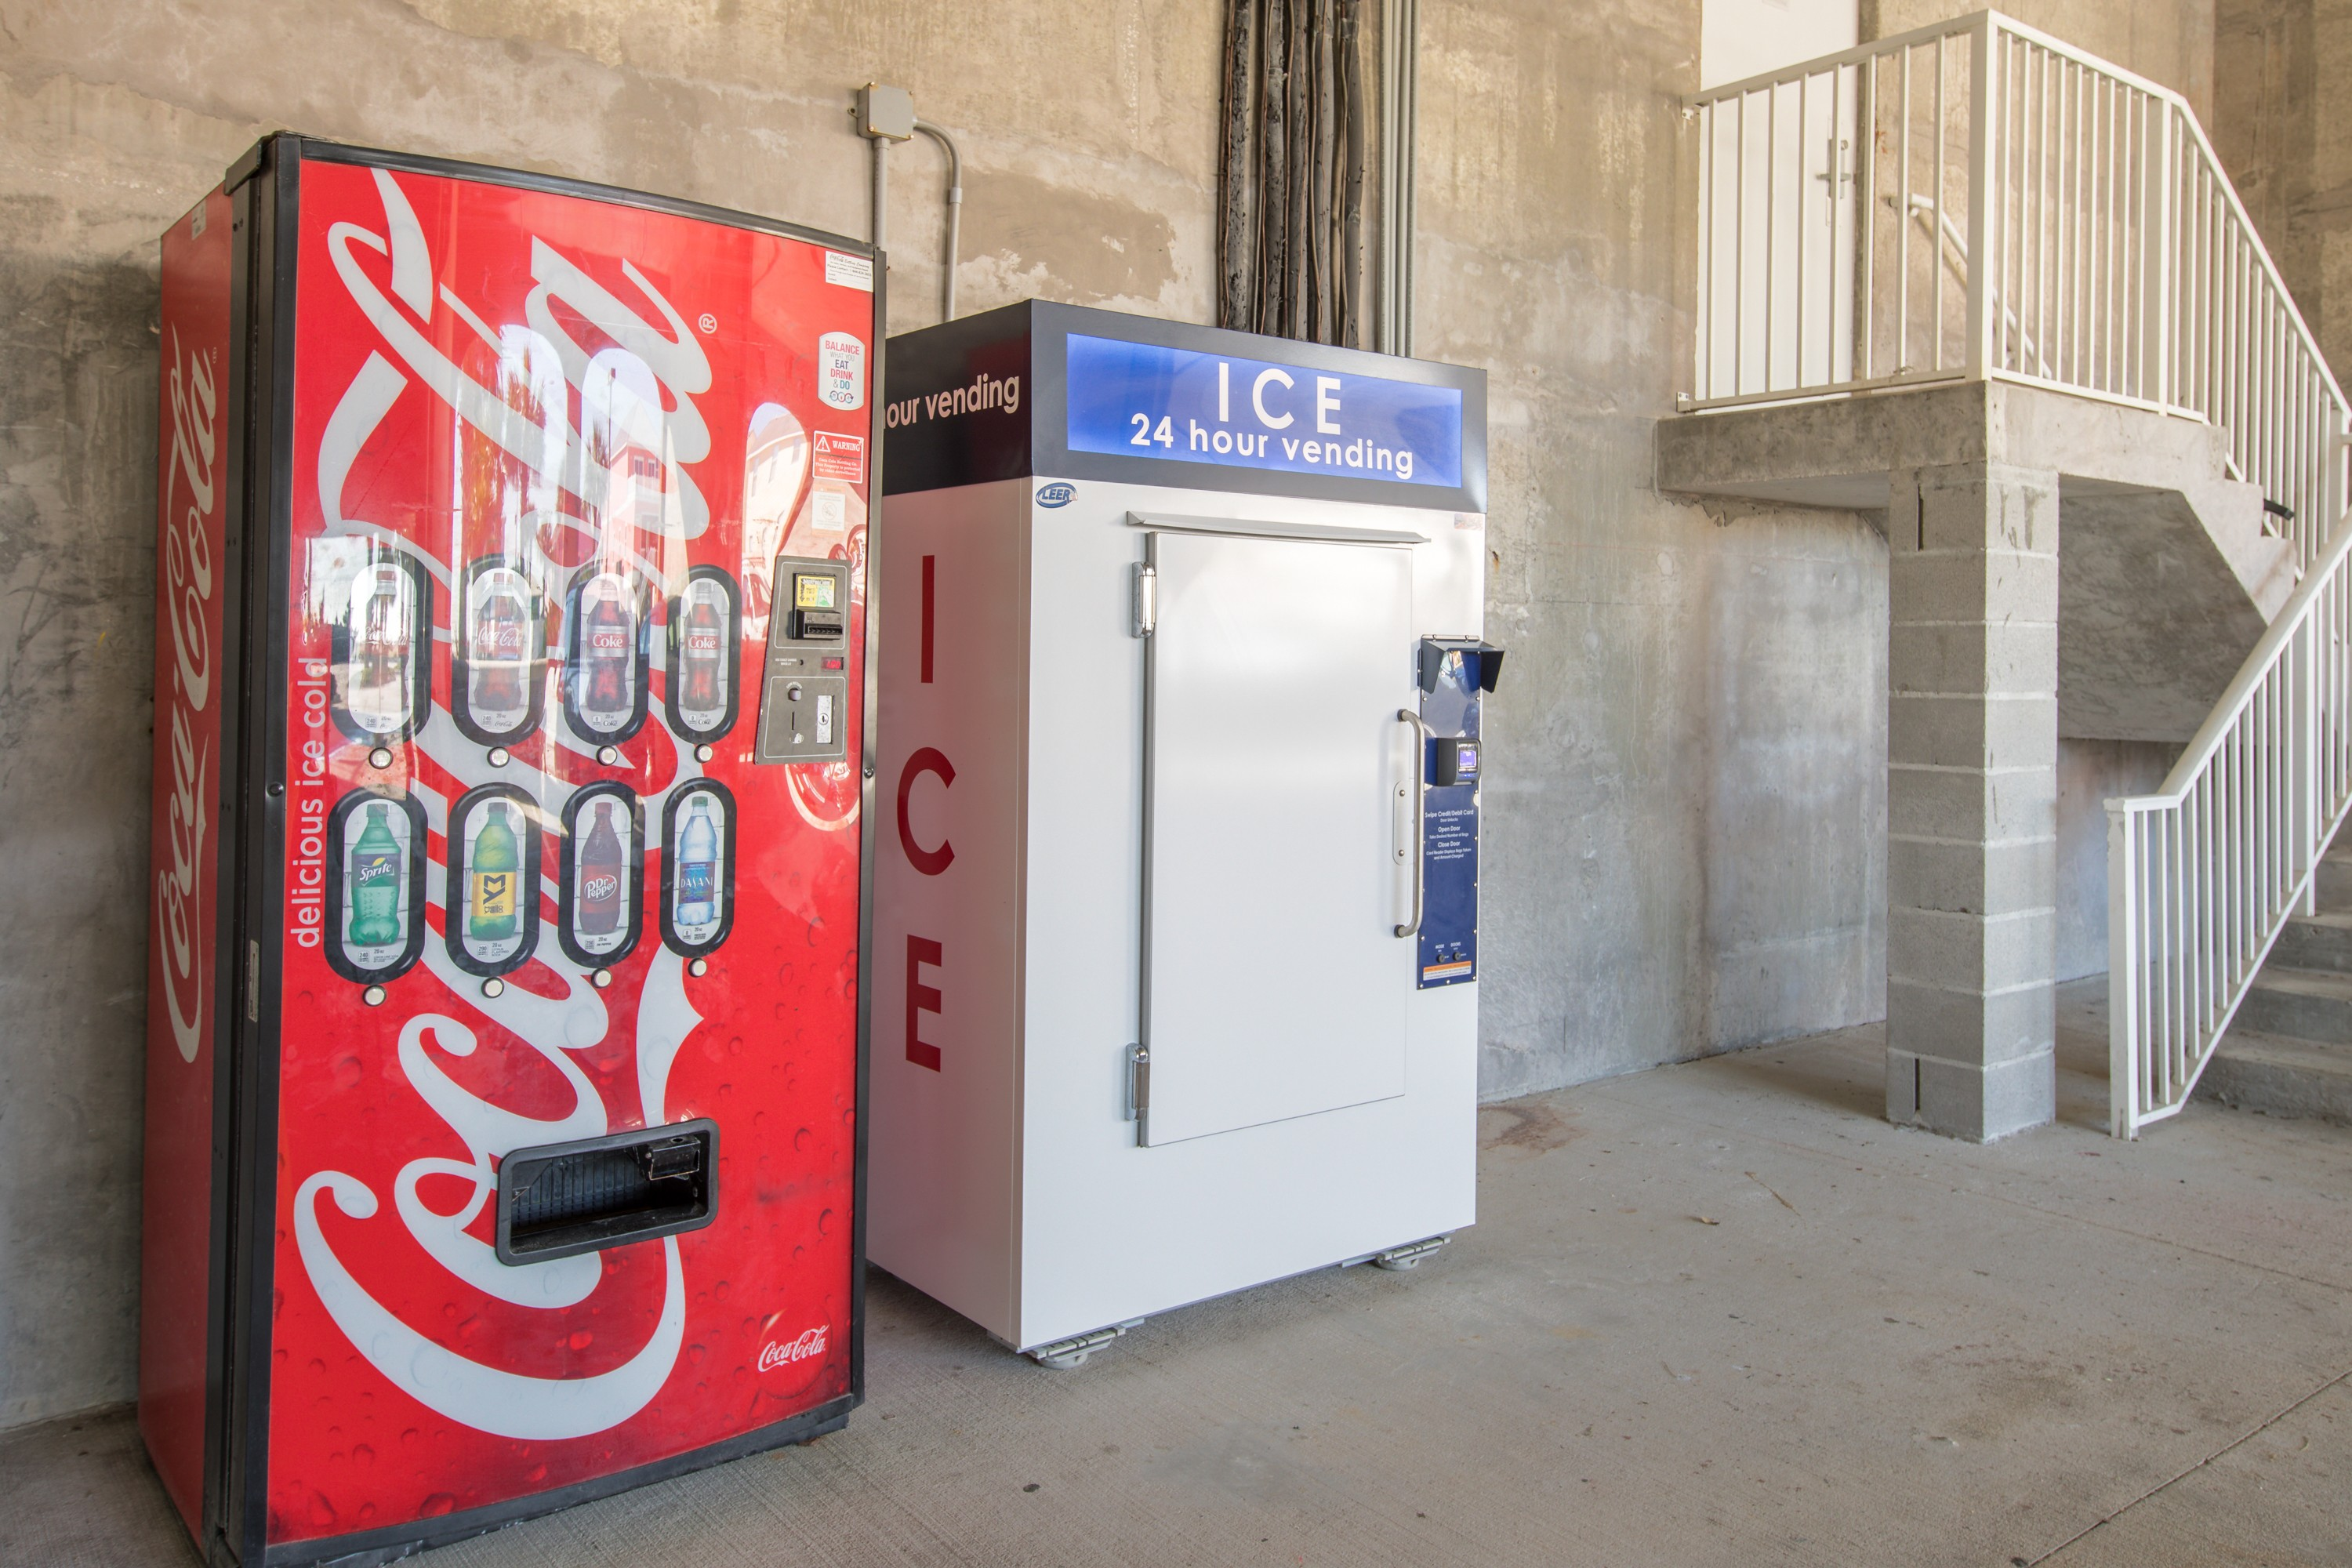 Ice & soda machine - located on the main floor near the elevators.